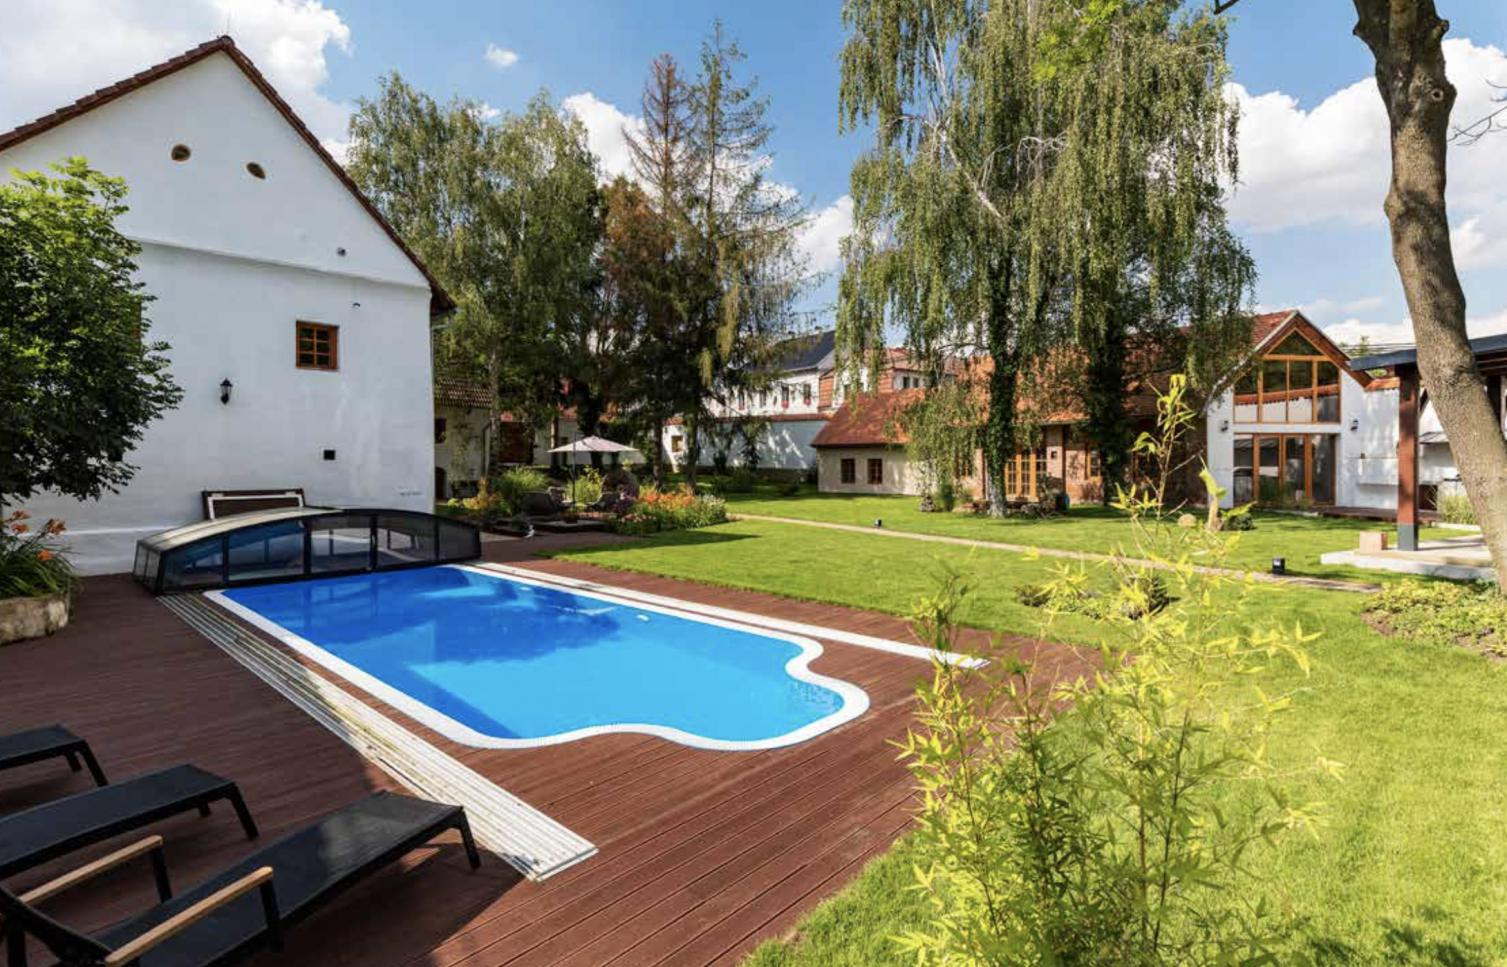 HOUSE FOR SALE, Historic property, Třebichovice 11